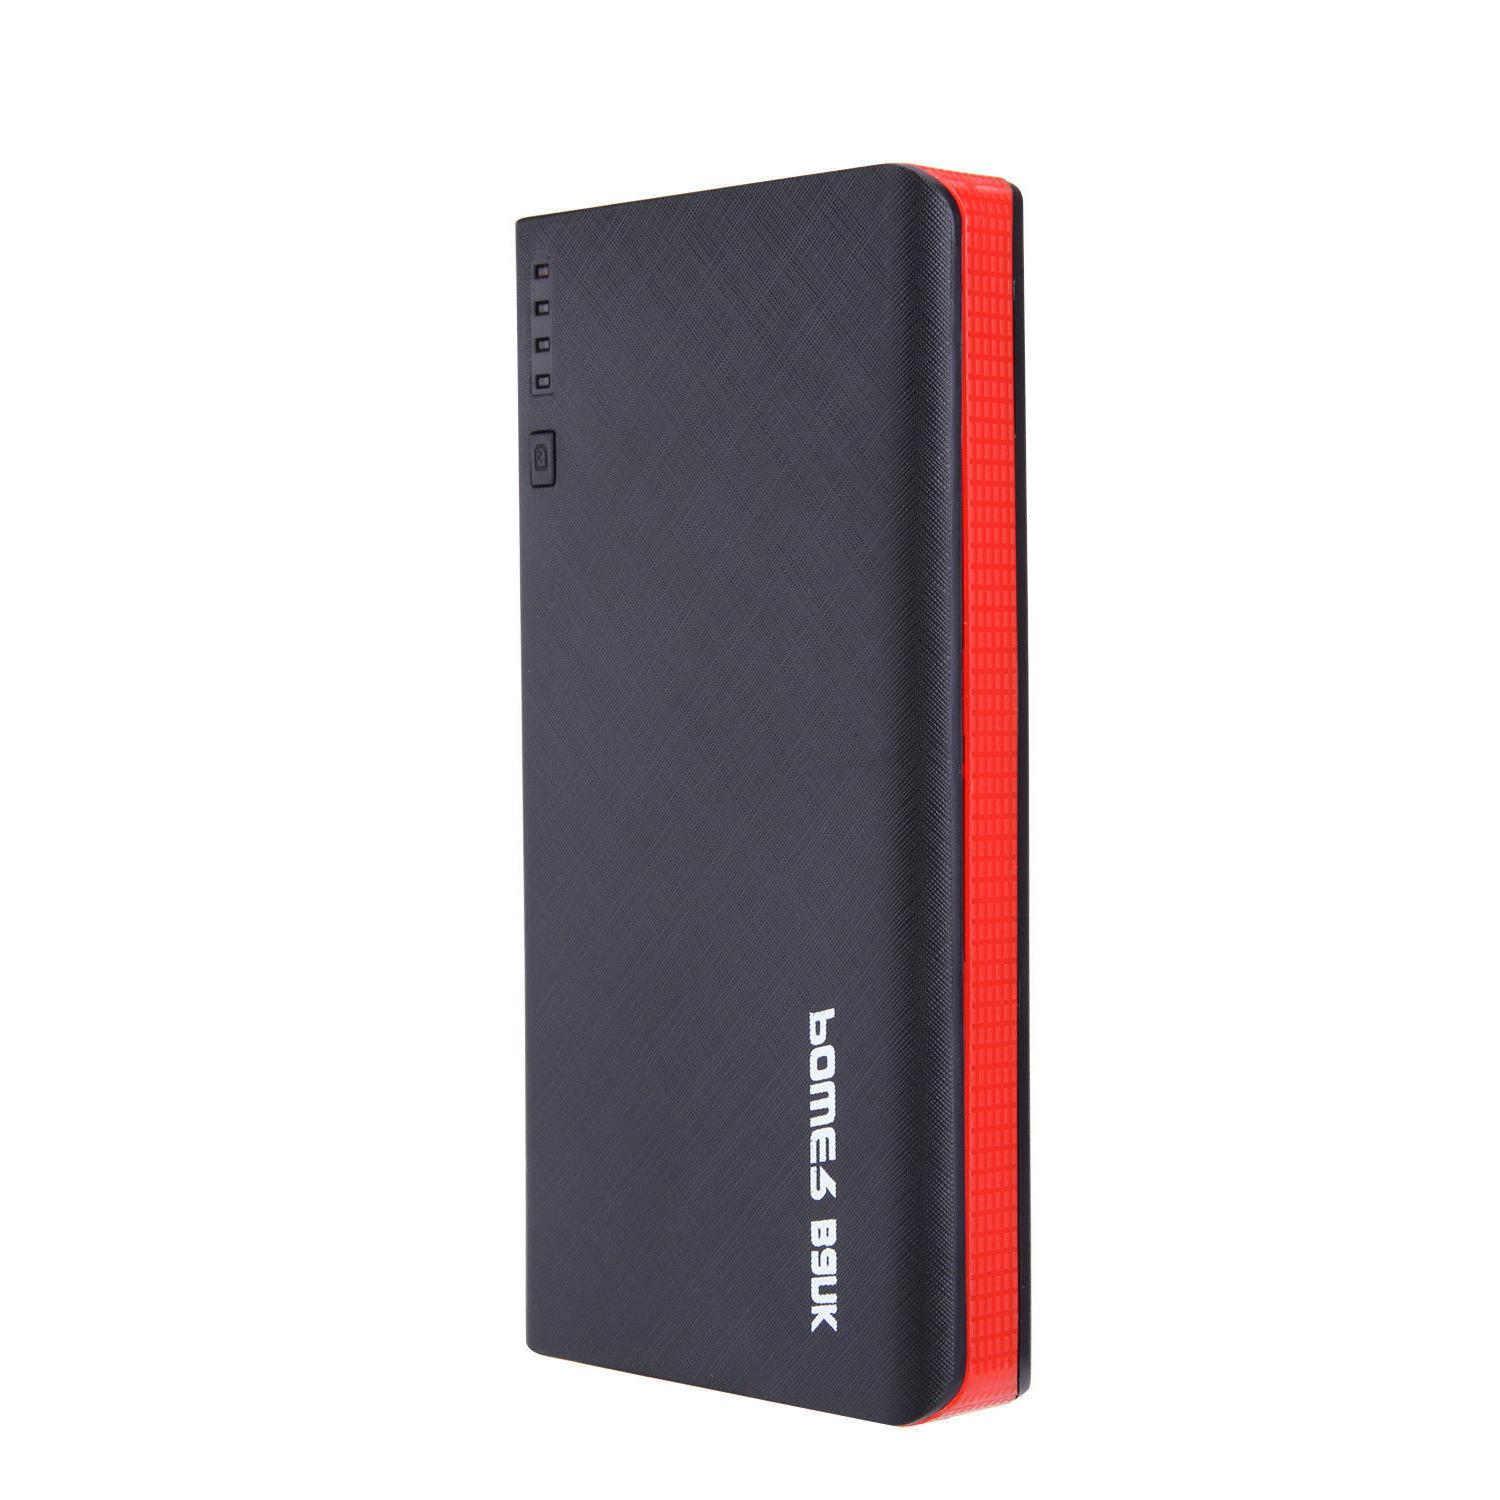 900000mAh 4 External Power Bank LED Charger for Cell Phone